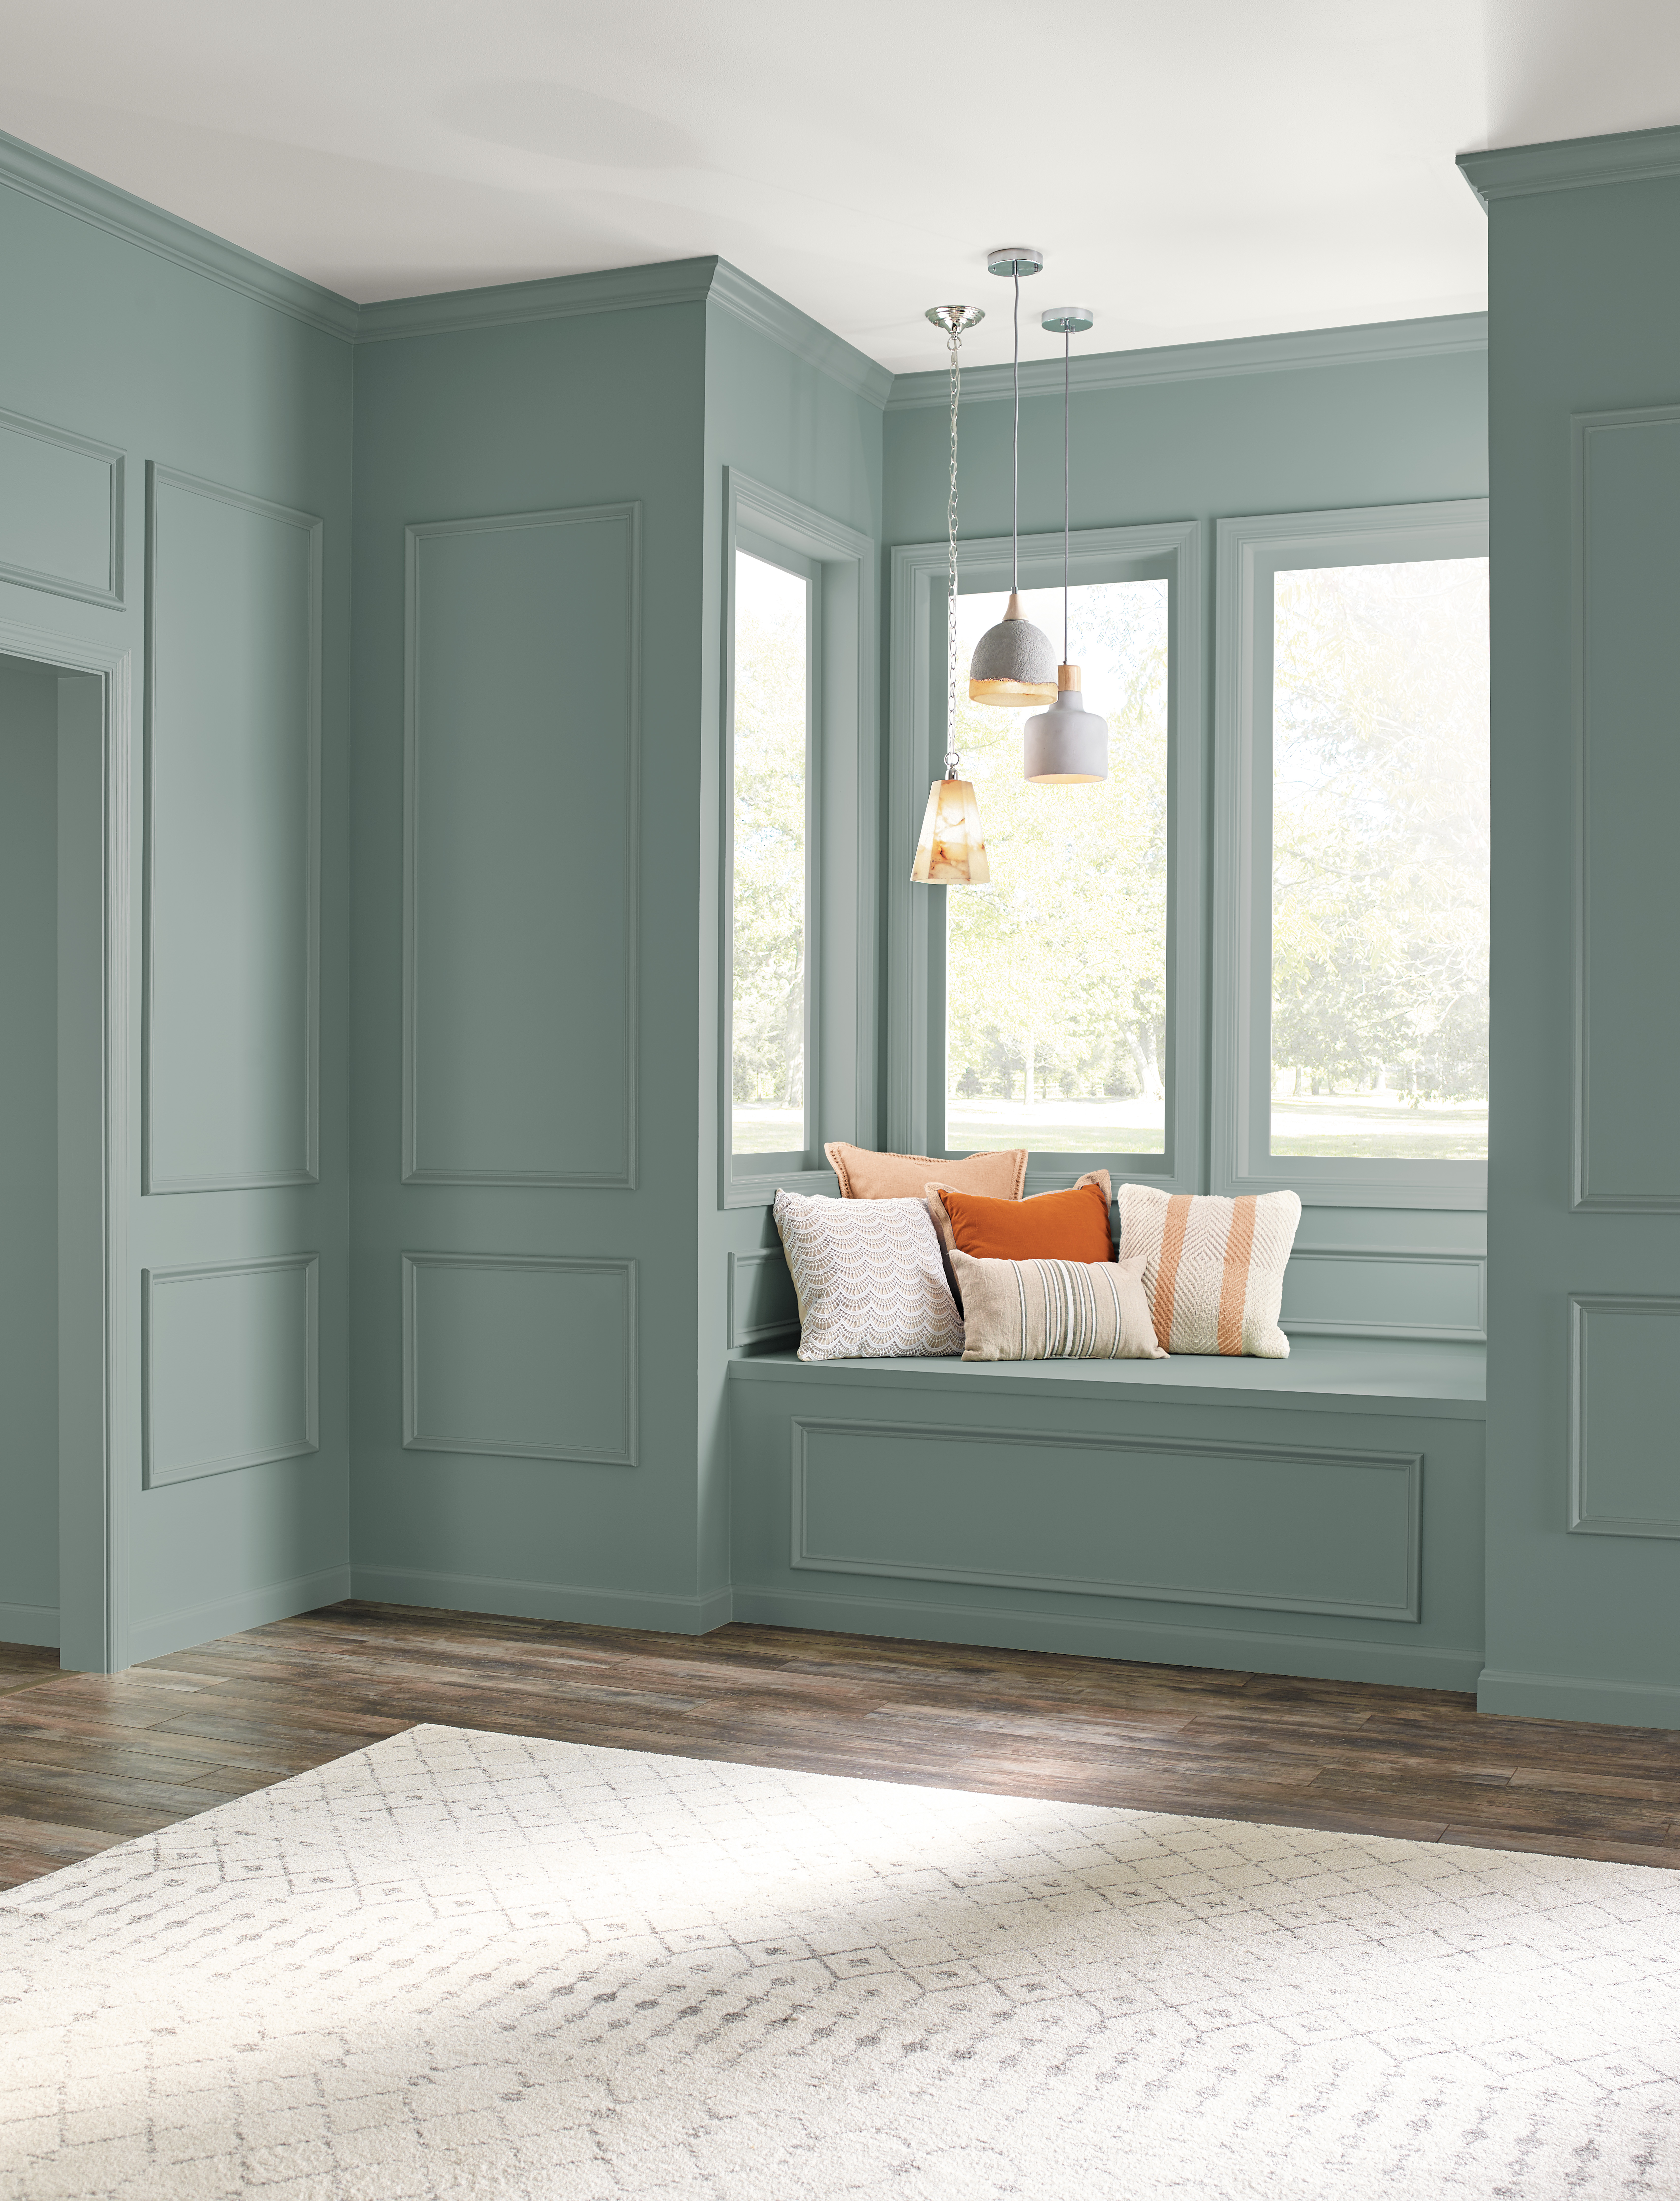 floor of inspirational photos for inaracenet paint behr basement wonderful fresh colors images interior coolest wall color walls amazing